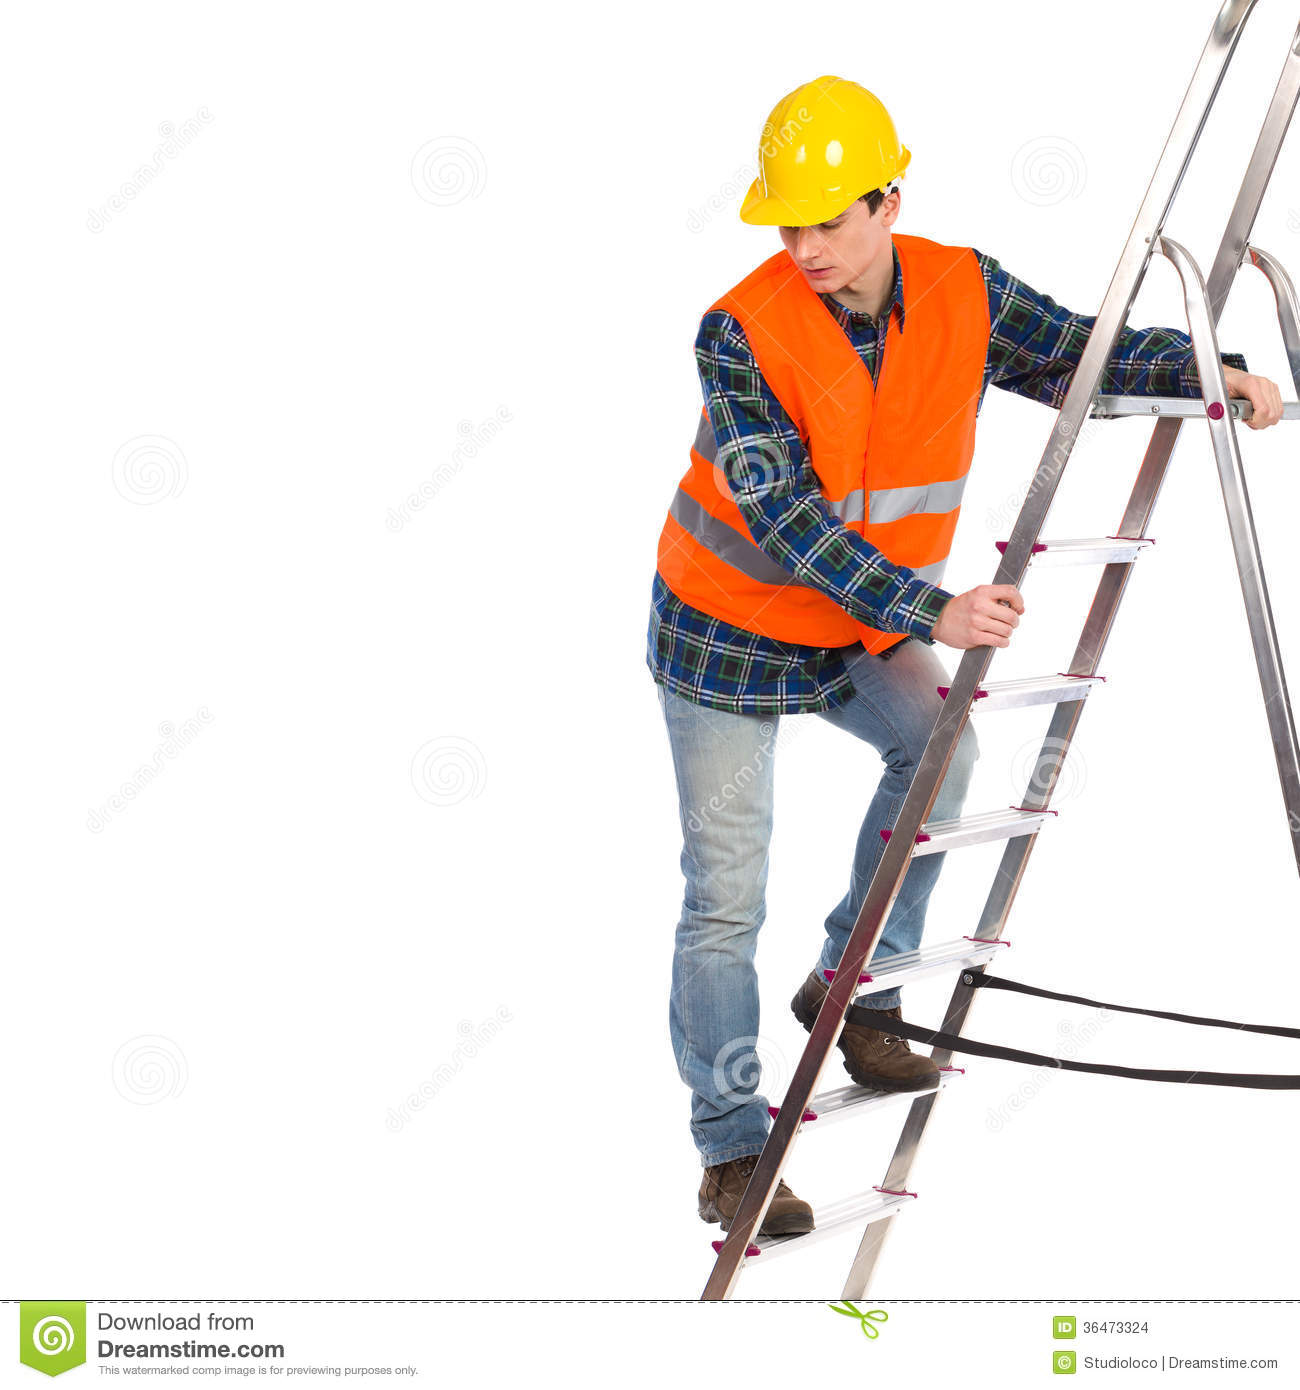 Construction Worker In Reflective Clothing Climbing A Ladder. Stock ... for Worker Climbing Ladder  34eri